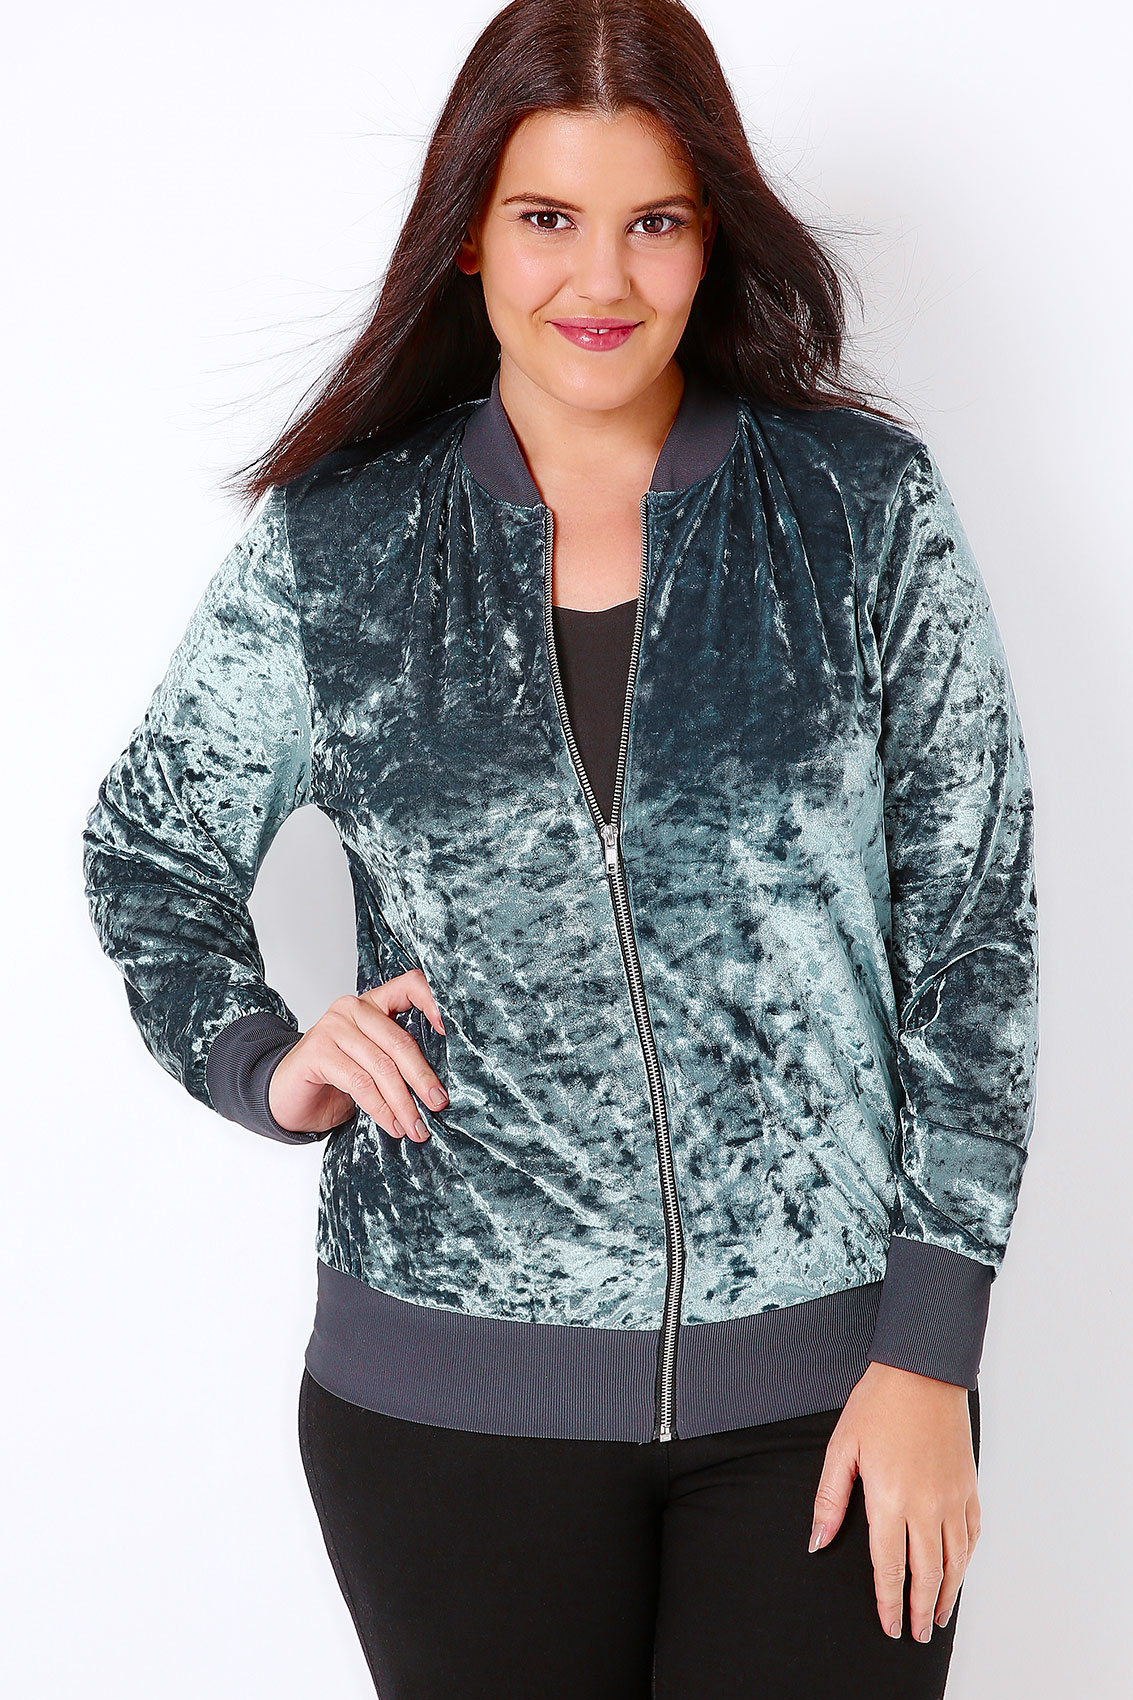 Shop our Collection of Women's Velvet Jackets at free-cabinetfile-downloaded.ga for the Latest Designer Brands & Styles. FREE SHIPPING AVAILABLE!